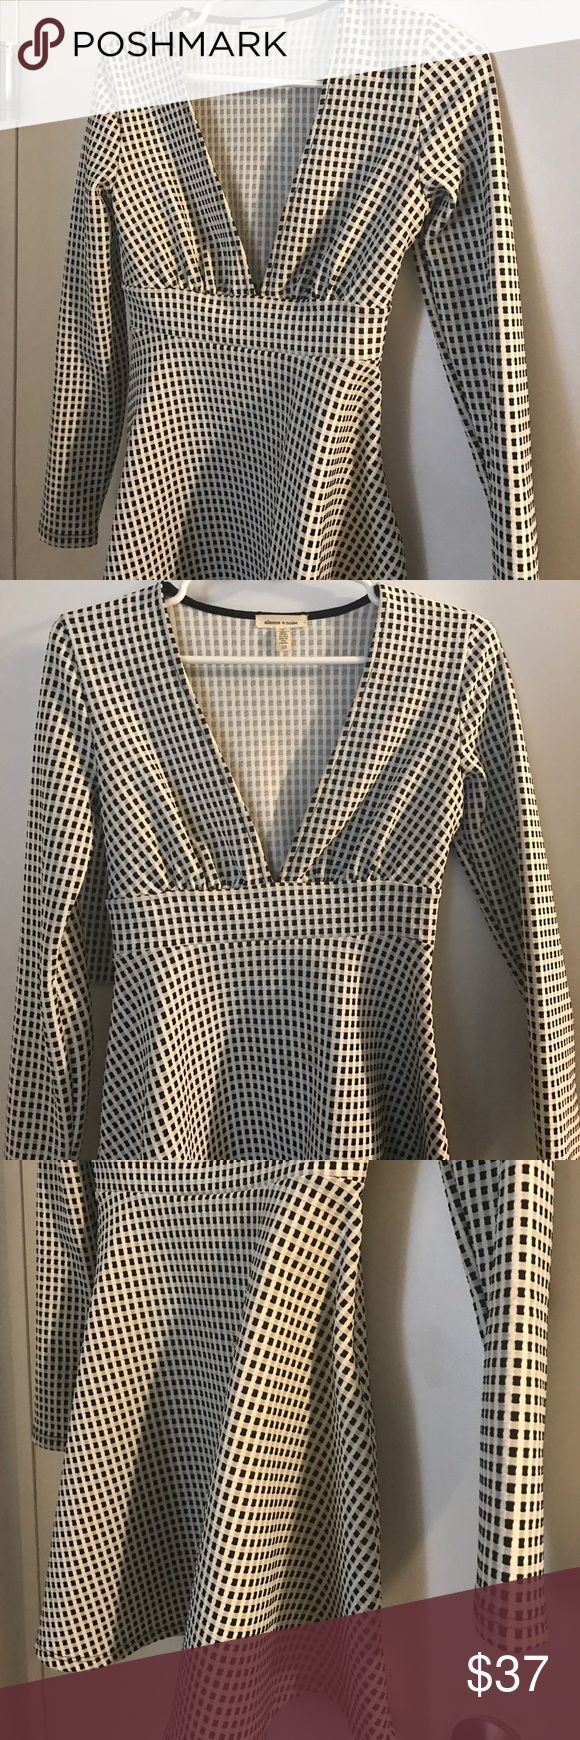 Silence & Noise black and white checkered dress Super flattering long sleeve dress with textured checkered b&w pattern - tight on top, ballet style bottom that's very slimming and a neckline that's sexy but sophisticated - 4% spandex - in perfect condition Urban Outfitters Dresses Long Sleeve